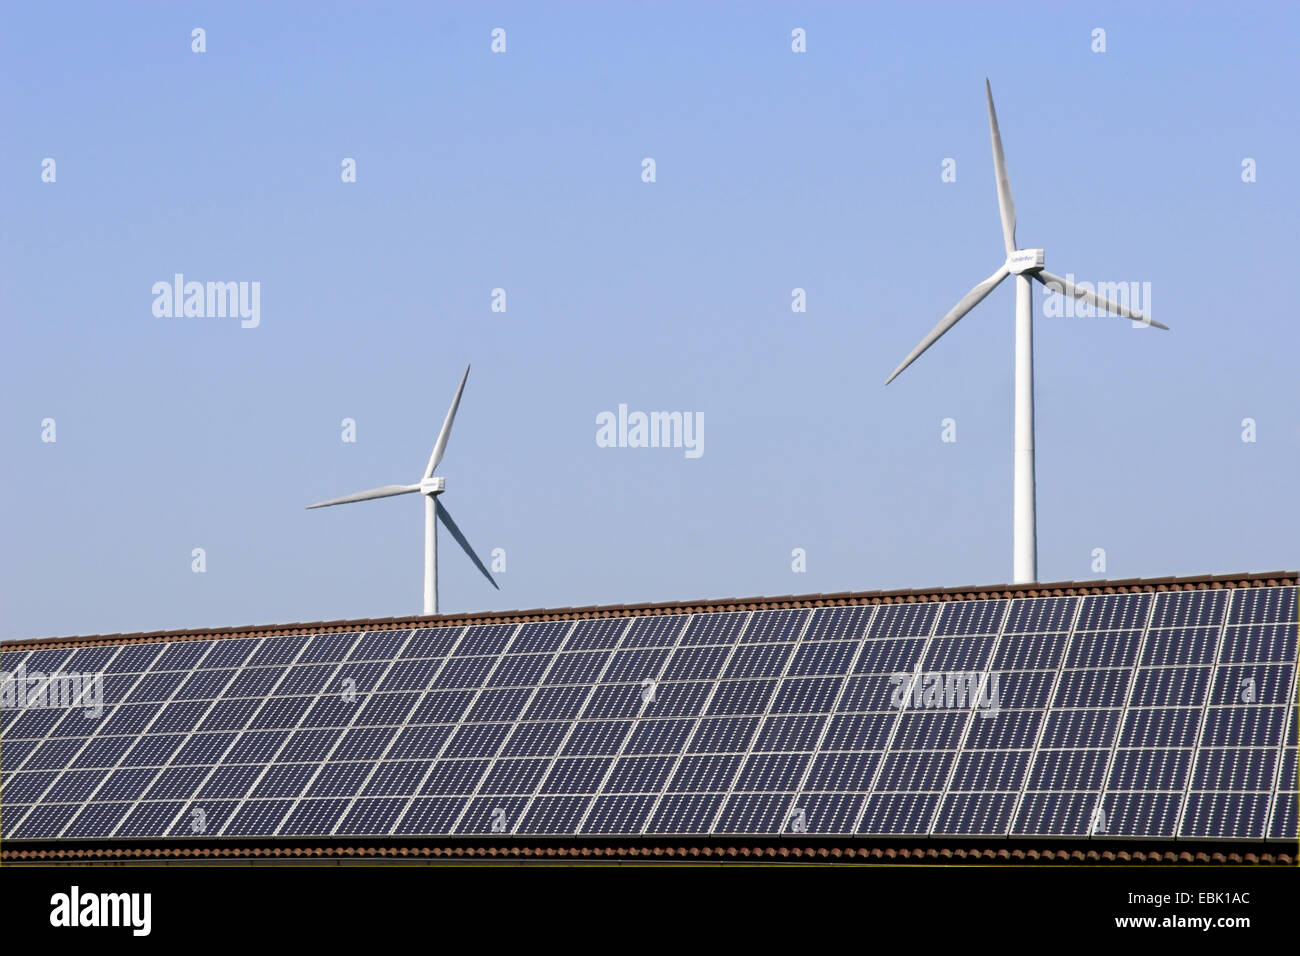 wind power stations looming behind a roof with solar cells, Germany - Stock Image